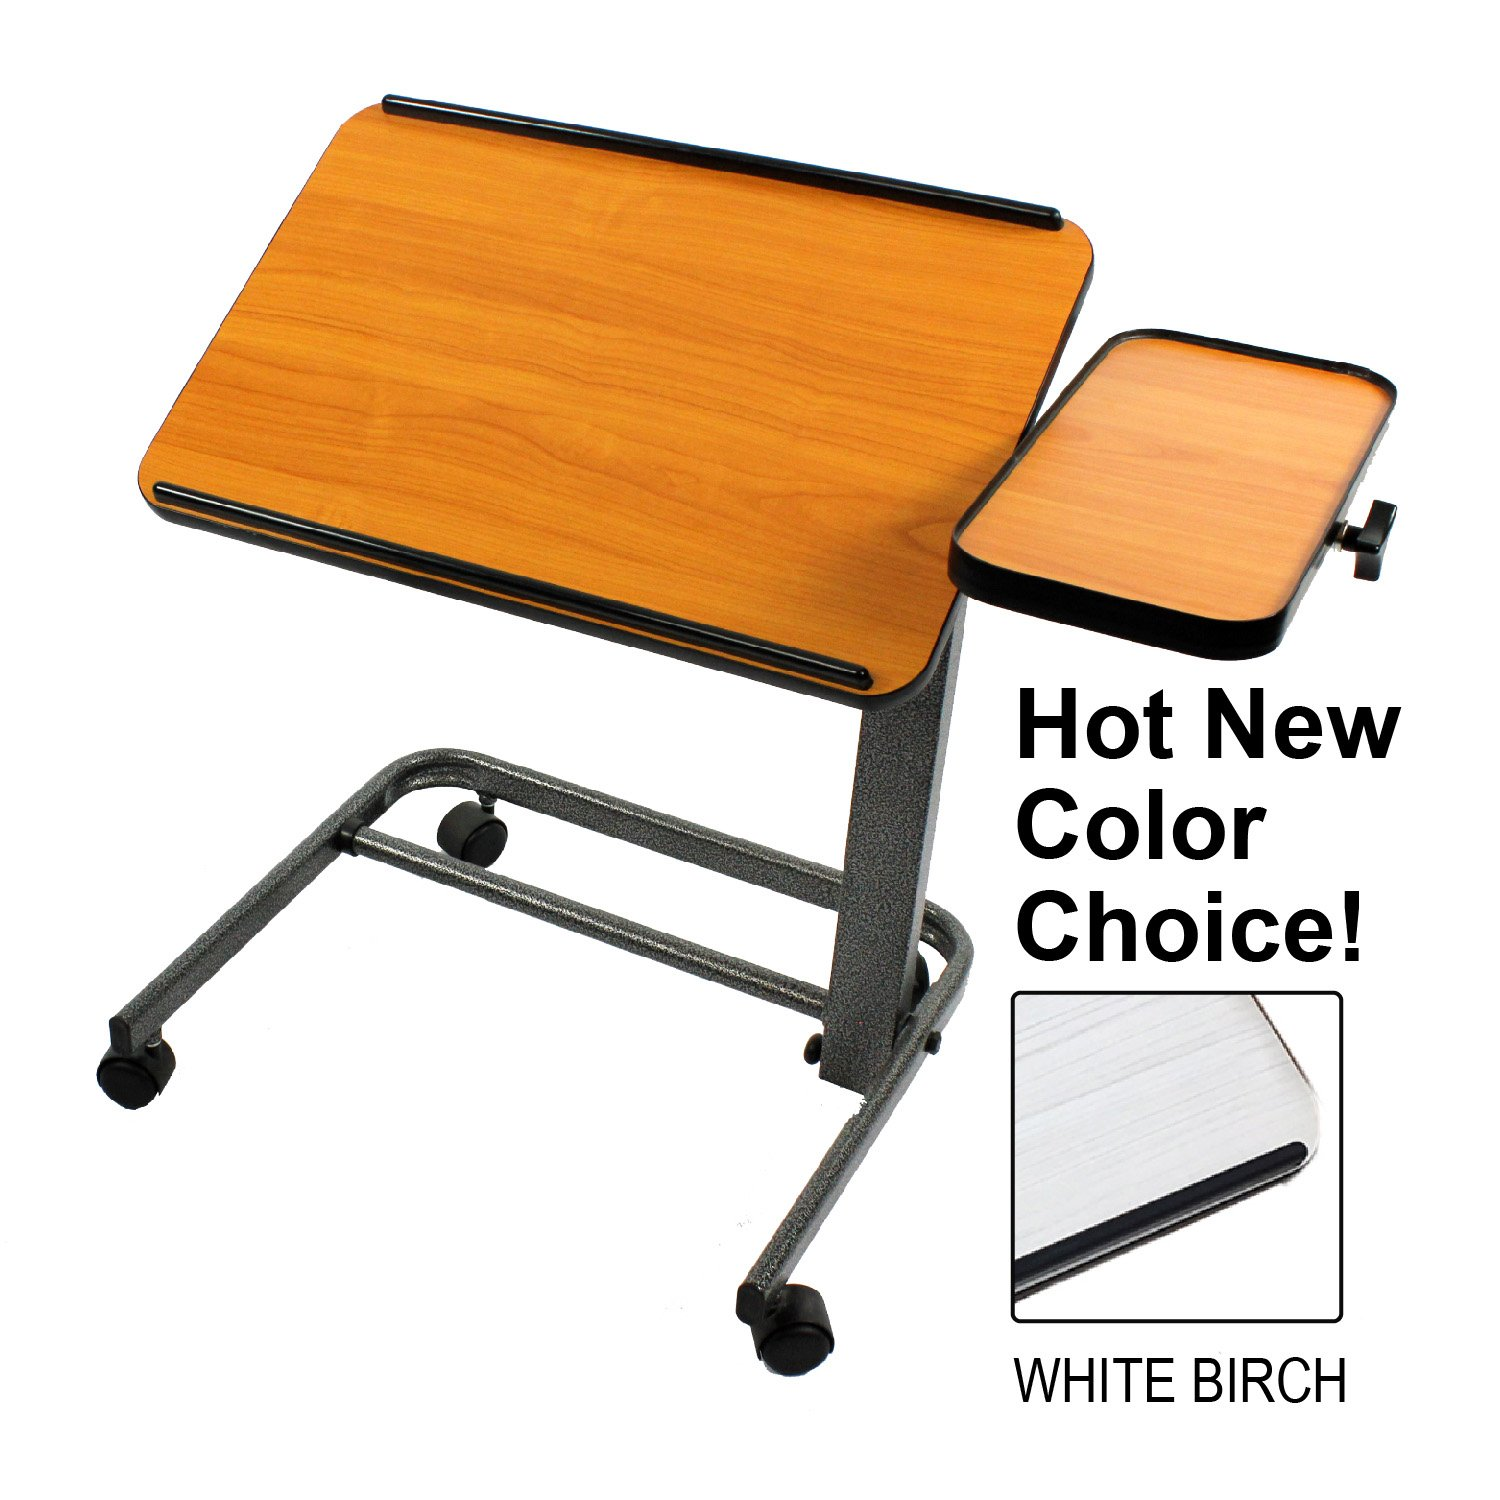 Platinum Health PHT2500 Acrobat Professional Overbed or Laptop Table with Tilting and Height Adjustable Casters uhvvhn9844242